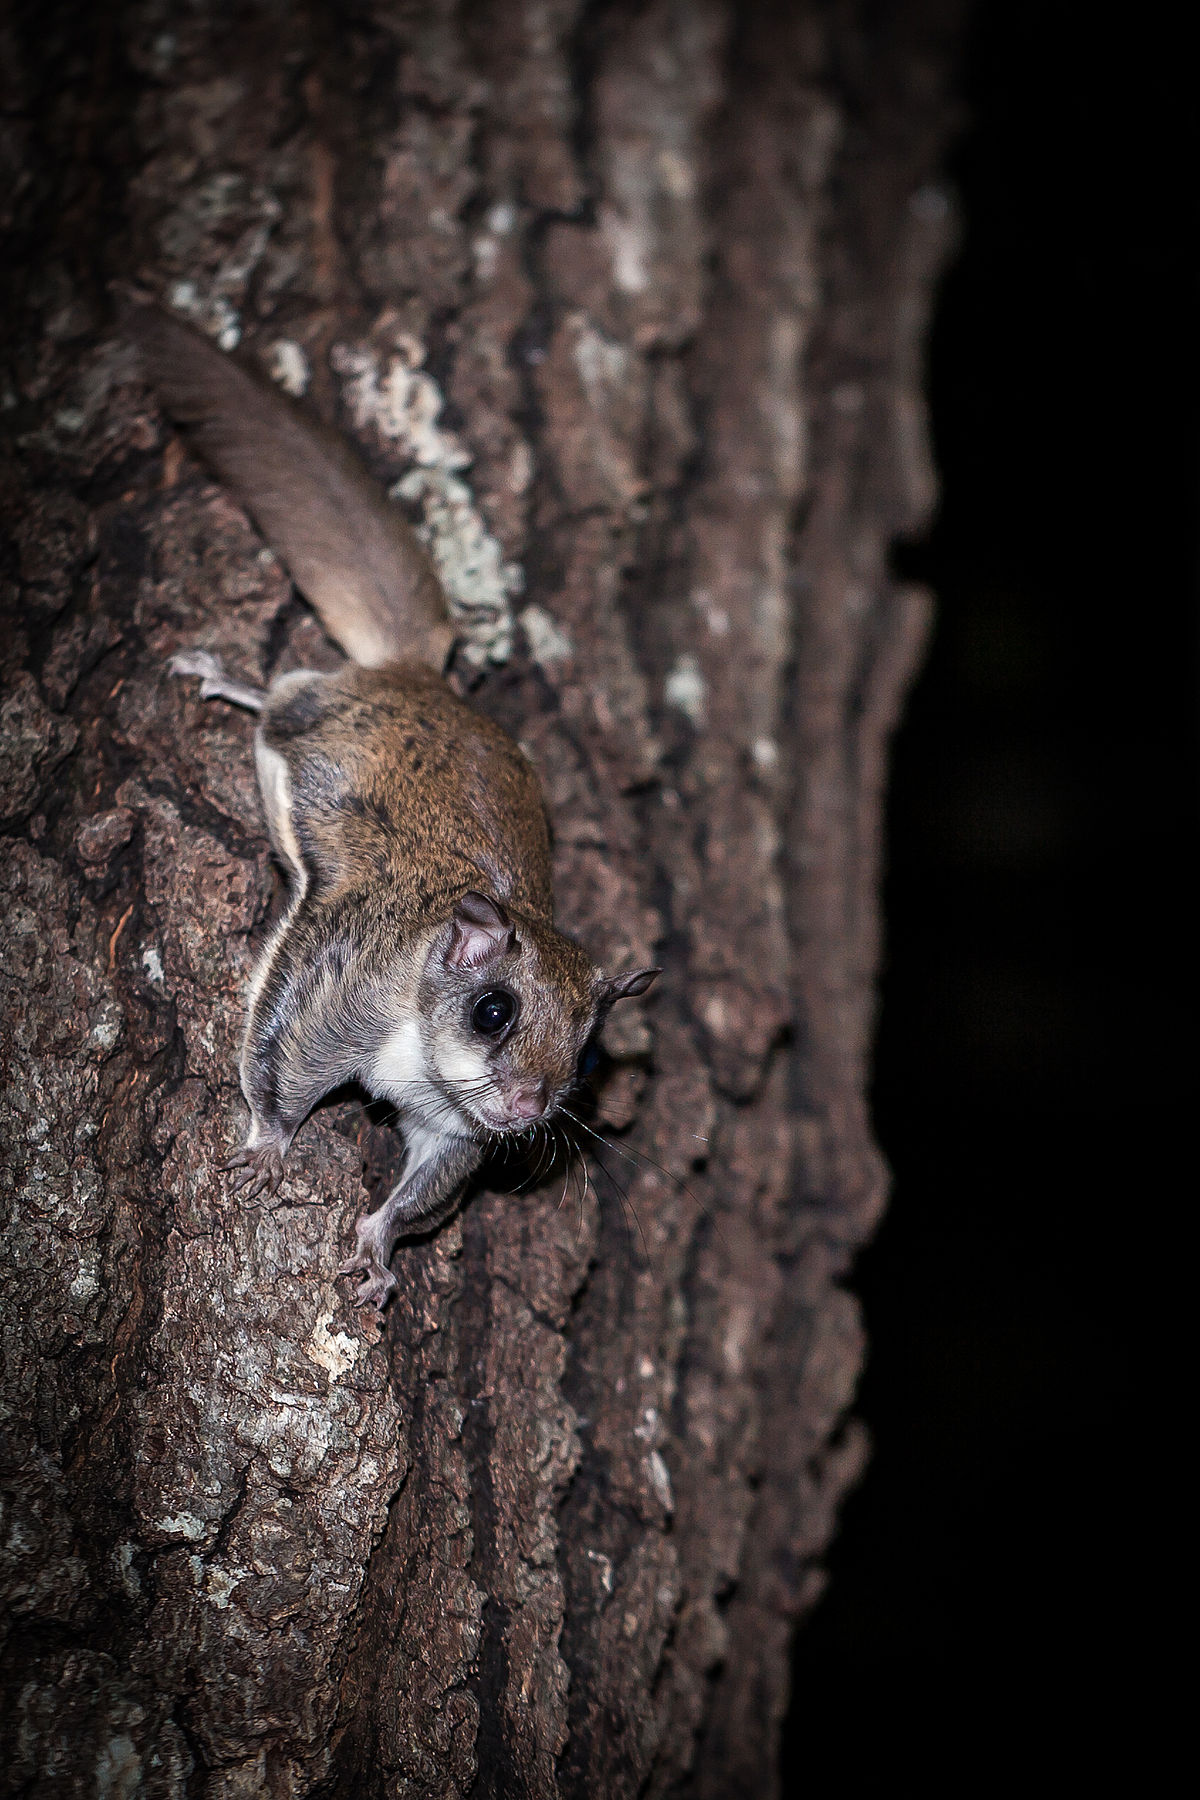 File:Southern flying squirrel.jpg - Wikimedia Commons